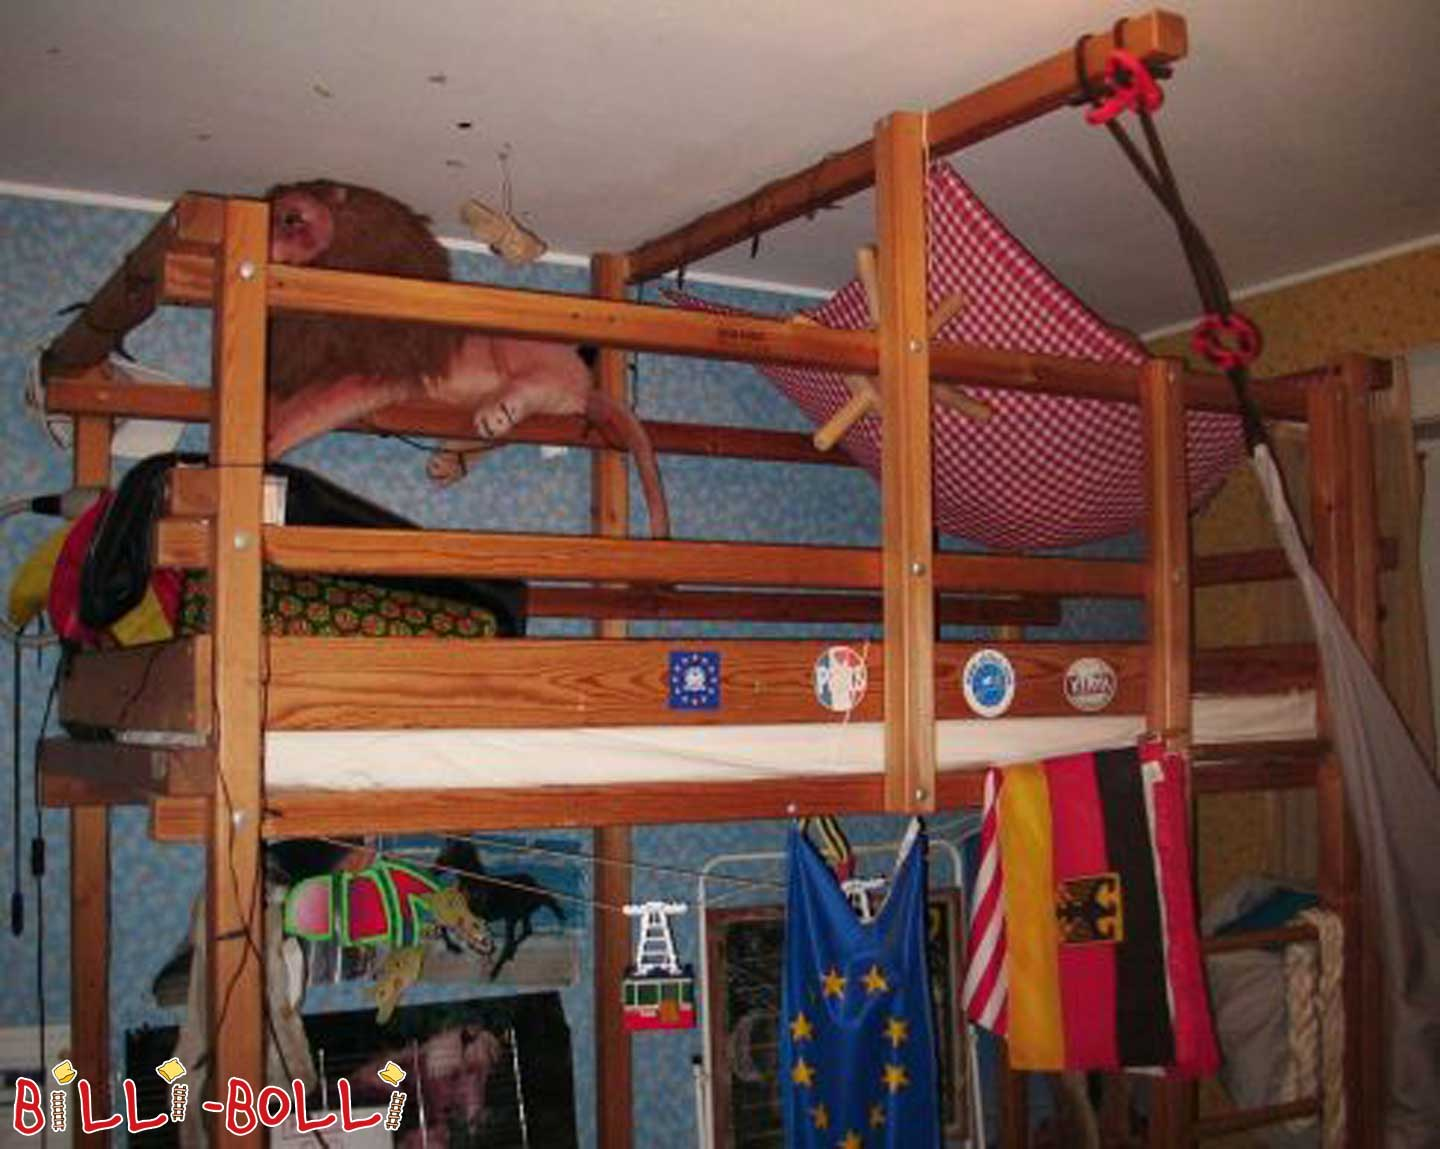 Original Gullibo Adventure Bed (second hand loft bed)